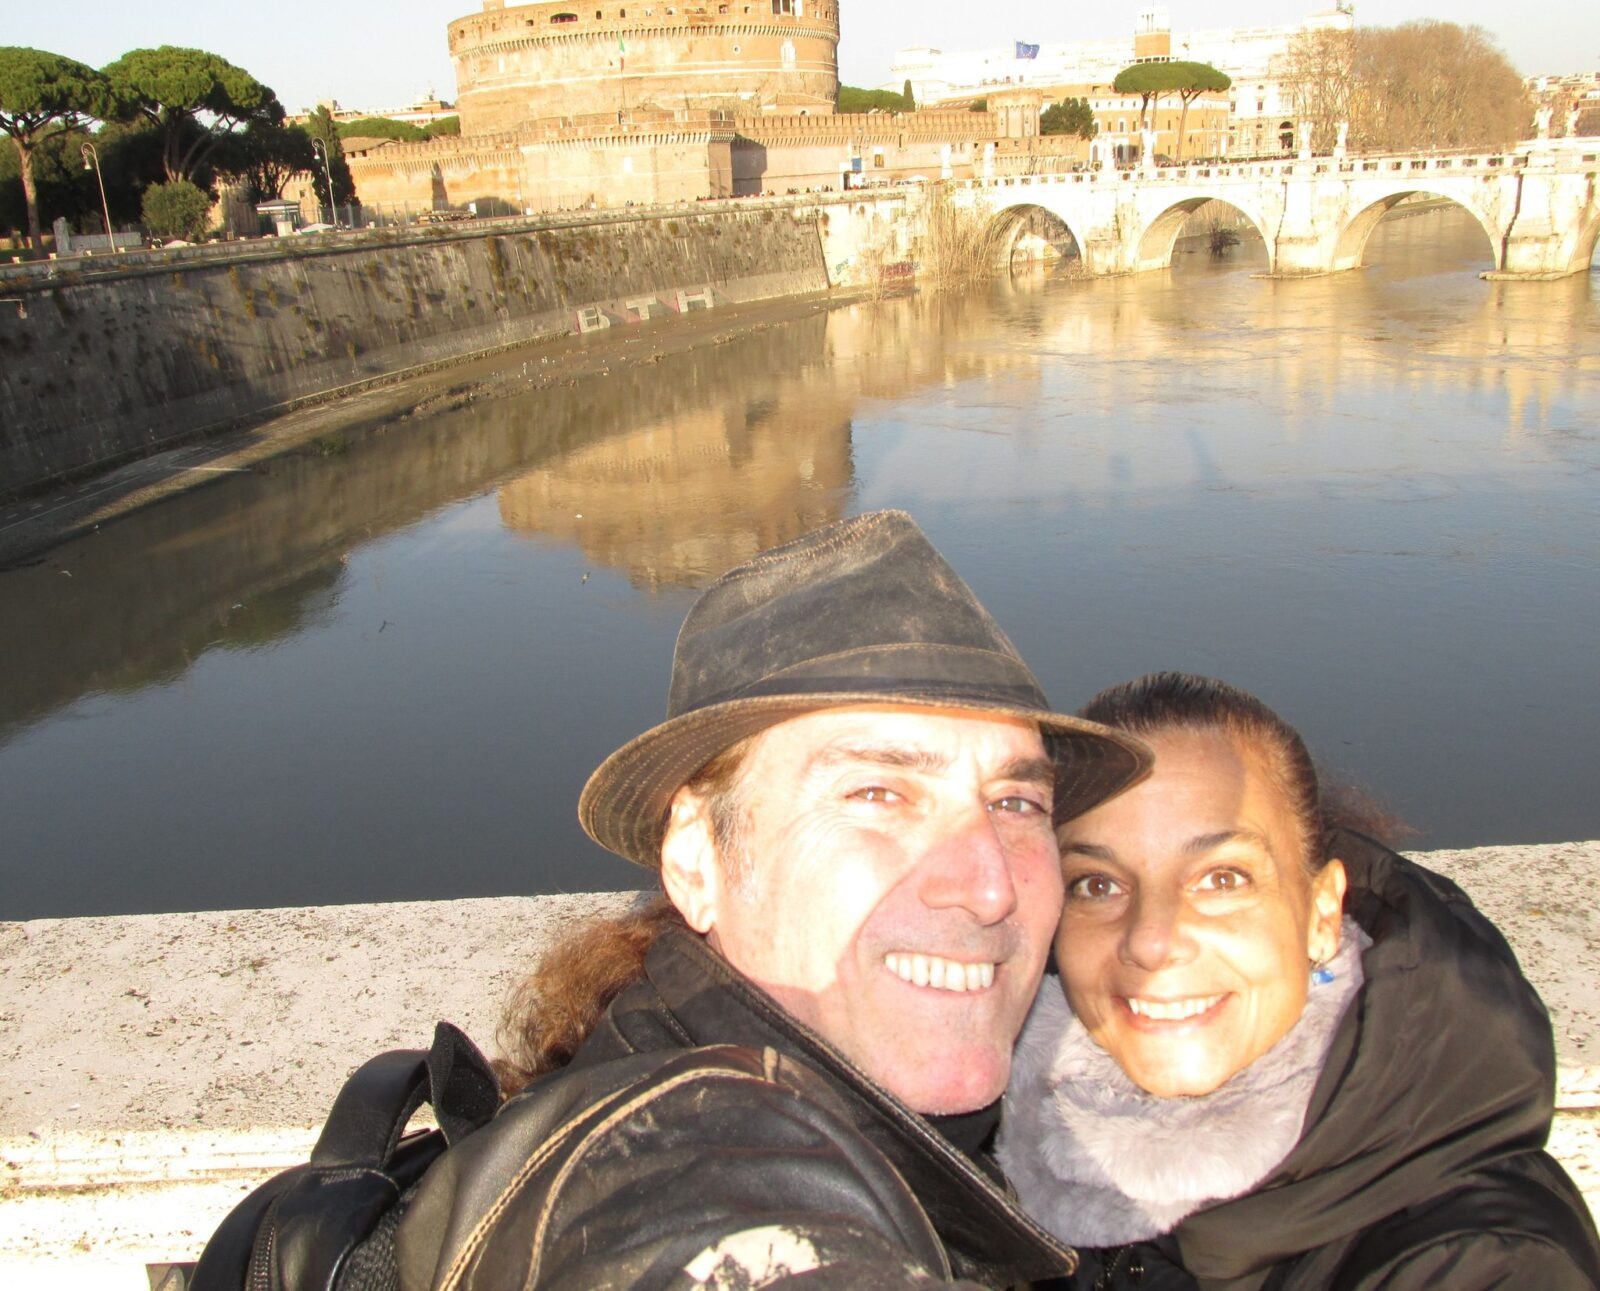 Tom Leitner and his wife, Ilaria, on Rome's Tiber River with Castel Sant'Angelo in the background.